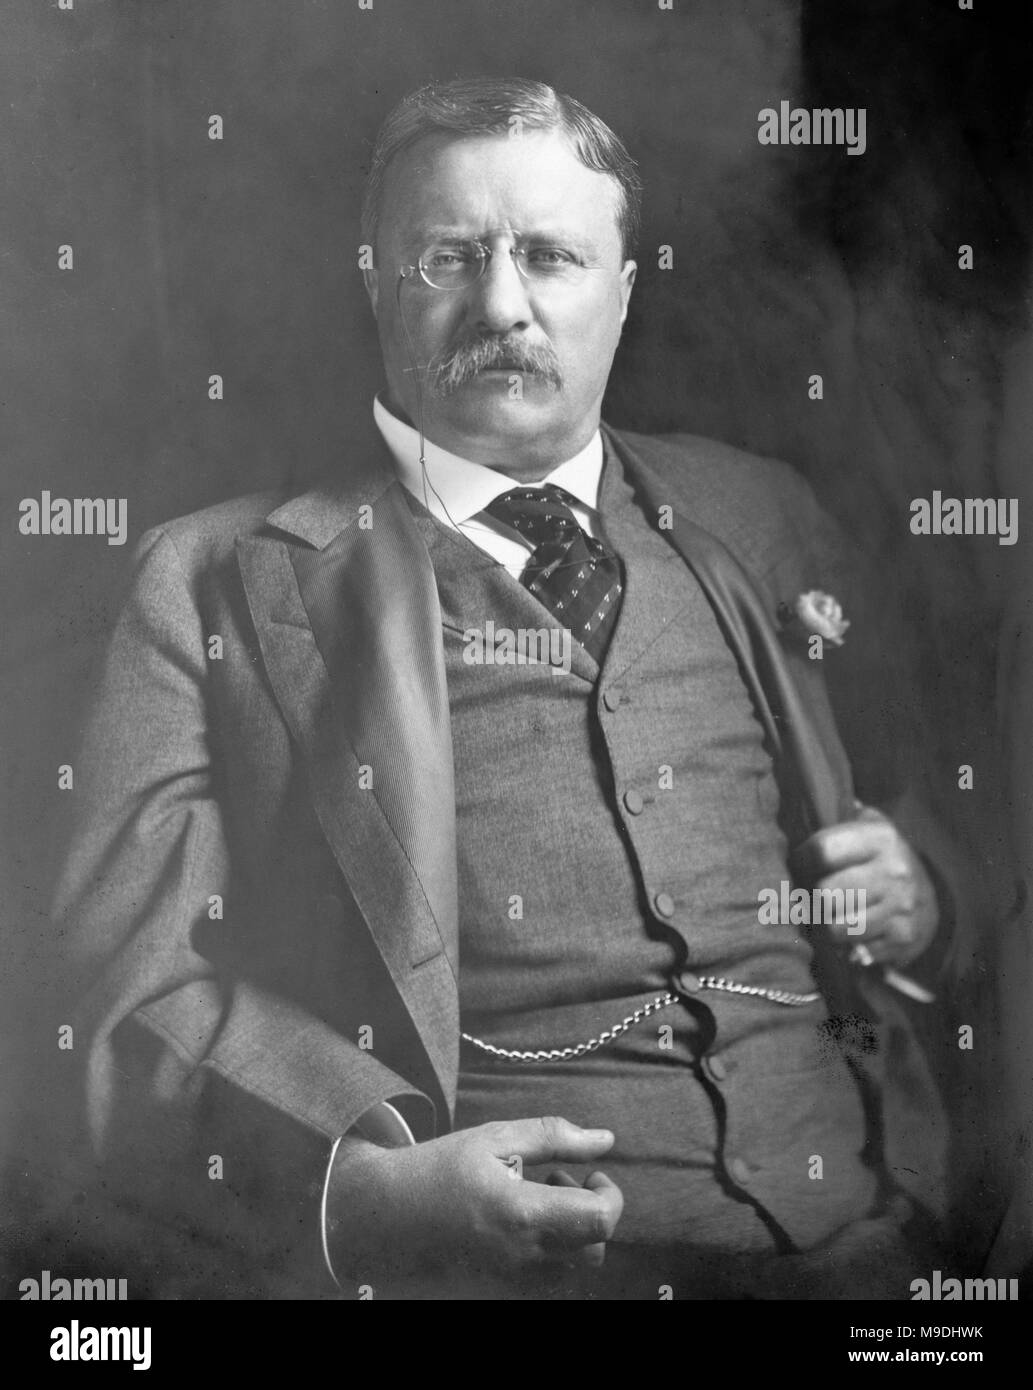 Theodore Roosevelt, Theodore Roosevelt Jr. (1858 – 1919) American statesman and writer and 26th President of the United States from 1901 to 1909 - Stock Image